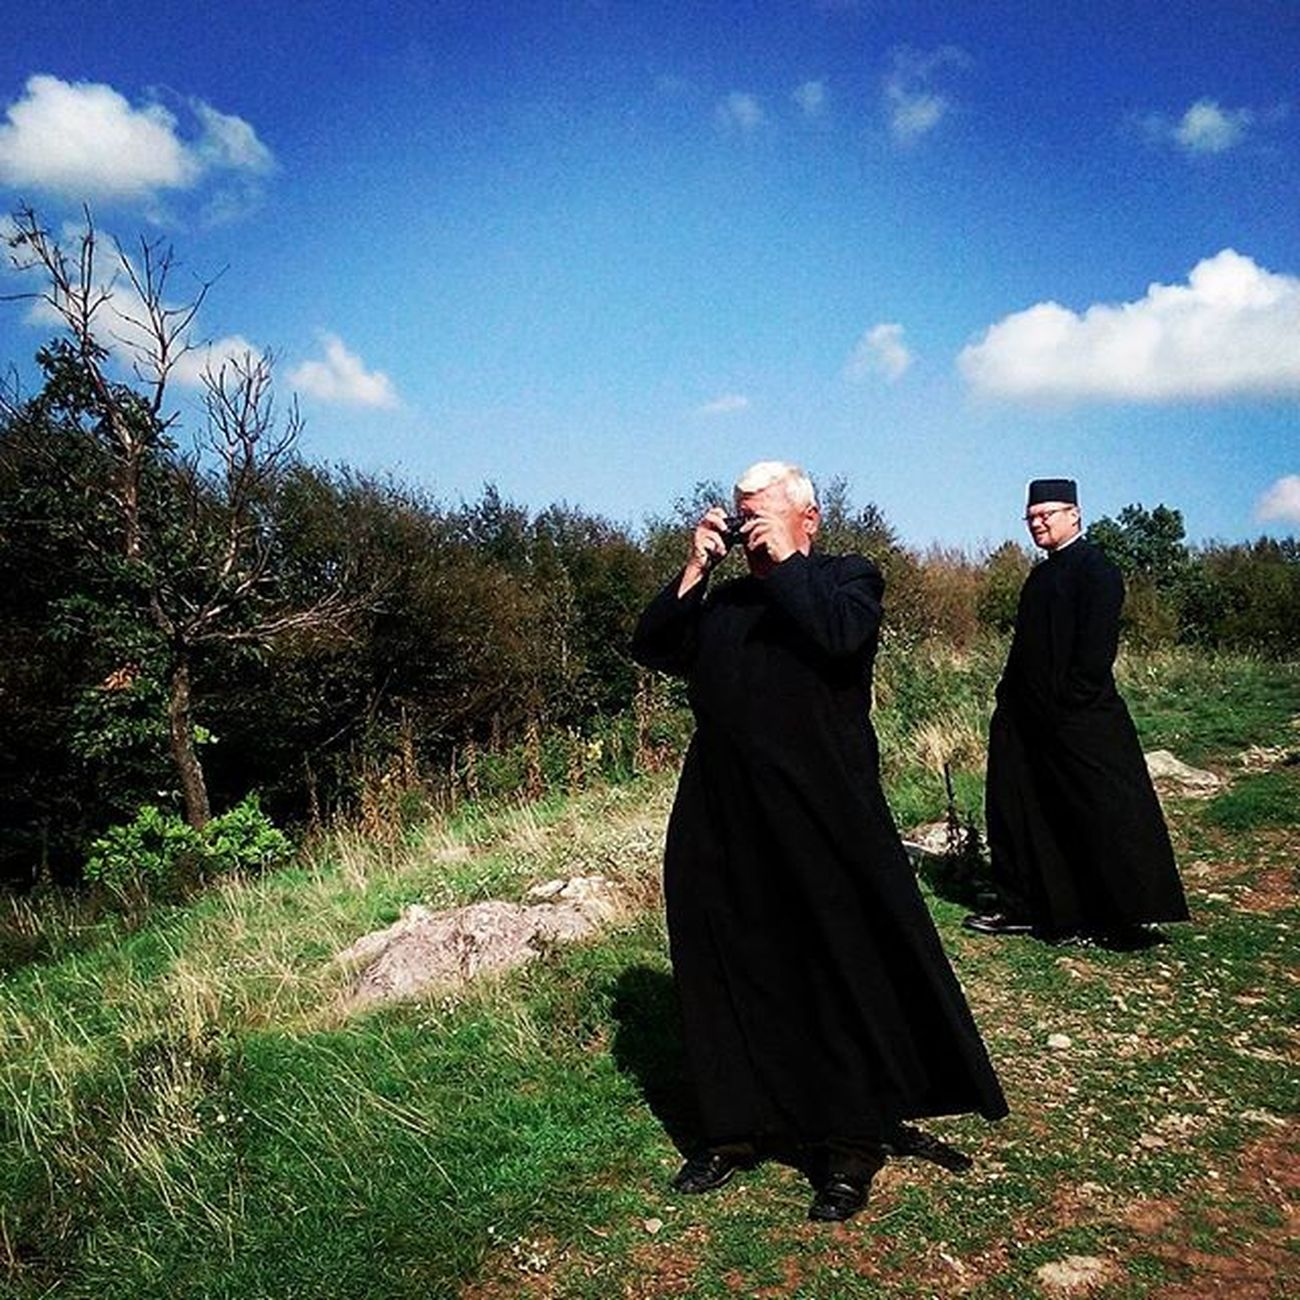 Orthodox priest takes a photo with a compact film camera. Siria, Romania, 2015. Photo by Ciprian Hord/@ciprianhord for @everydayeasterneurope Everydayeverywhere Romania Ciprianhord Outofthephone Priest LCStories